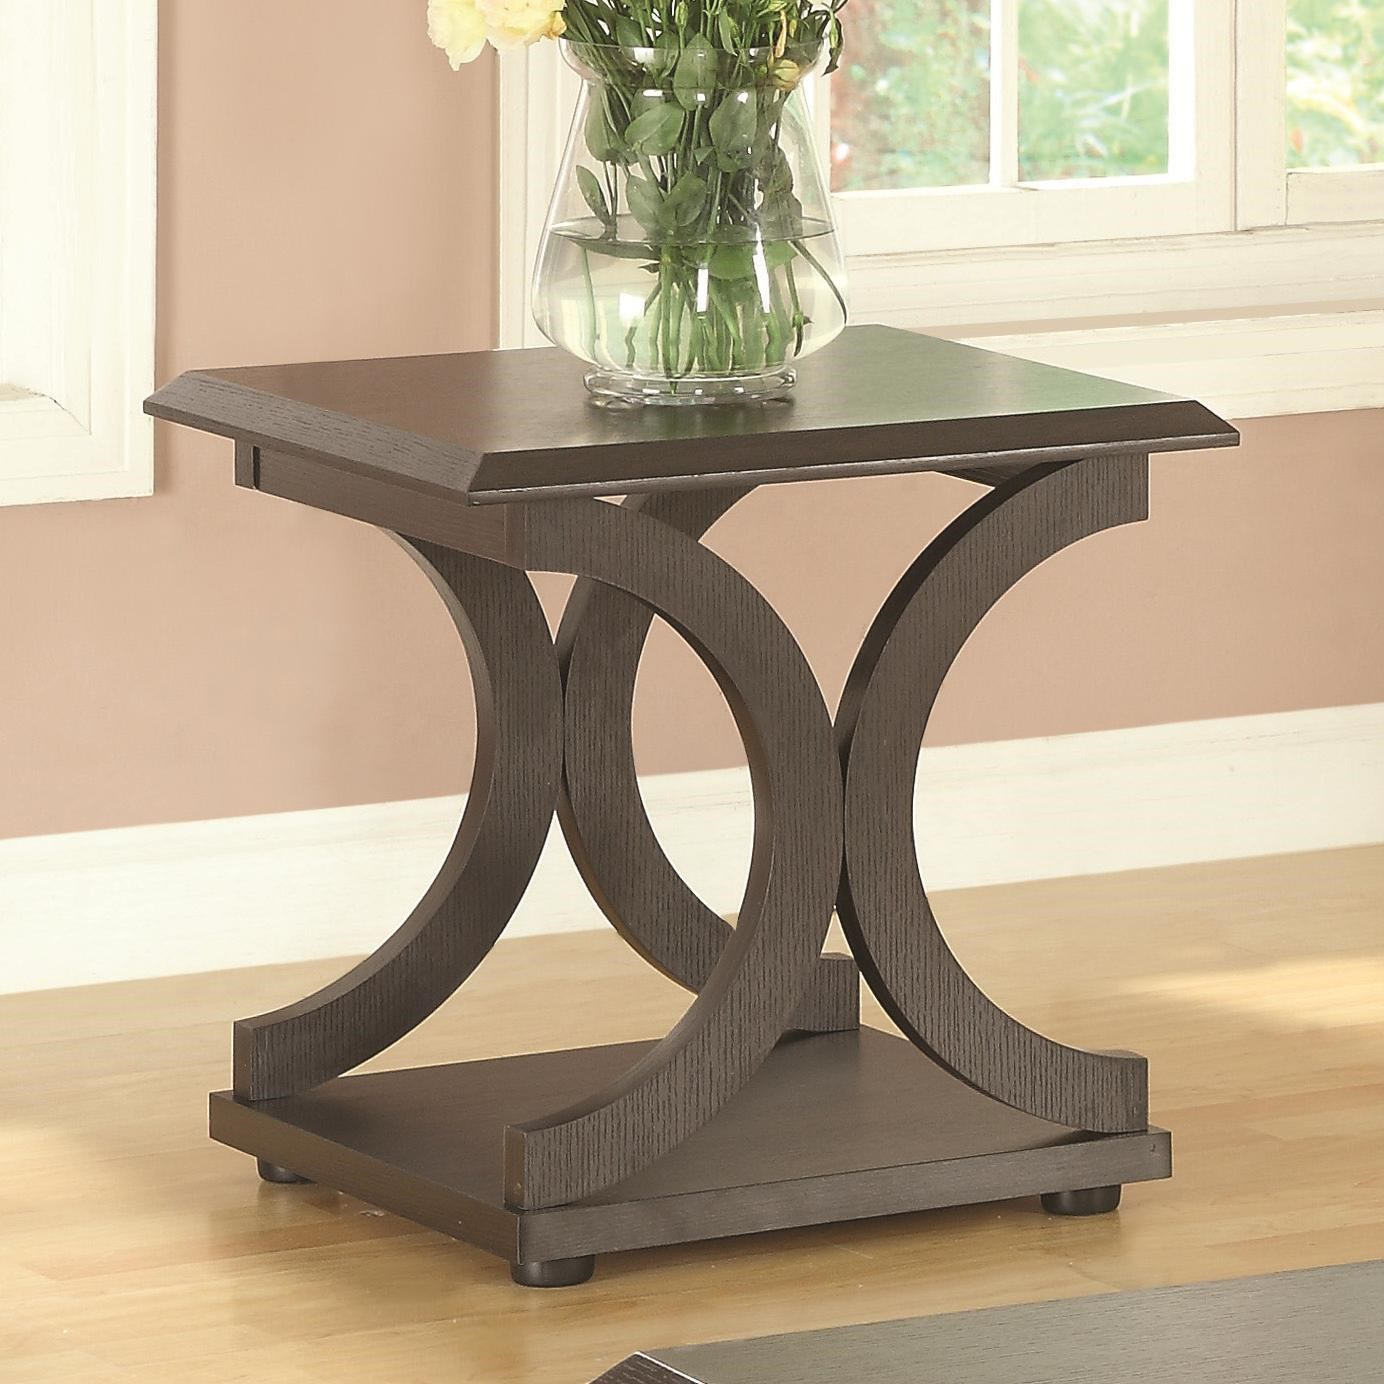 End Table For Living Room 703140 C Shaped End Table By Coaster At Value City Furniture